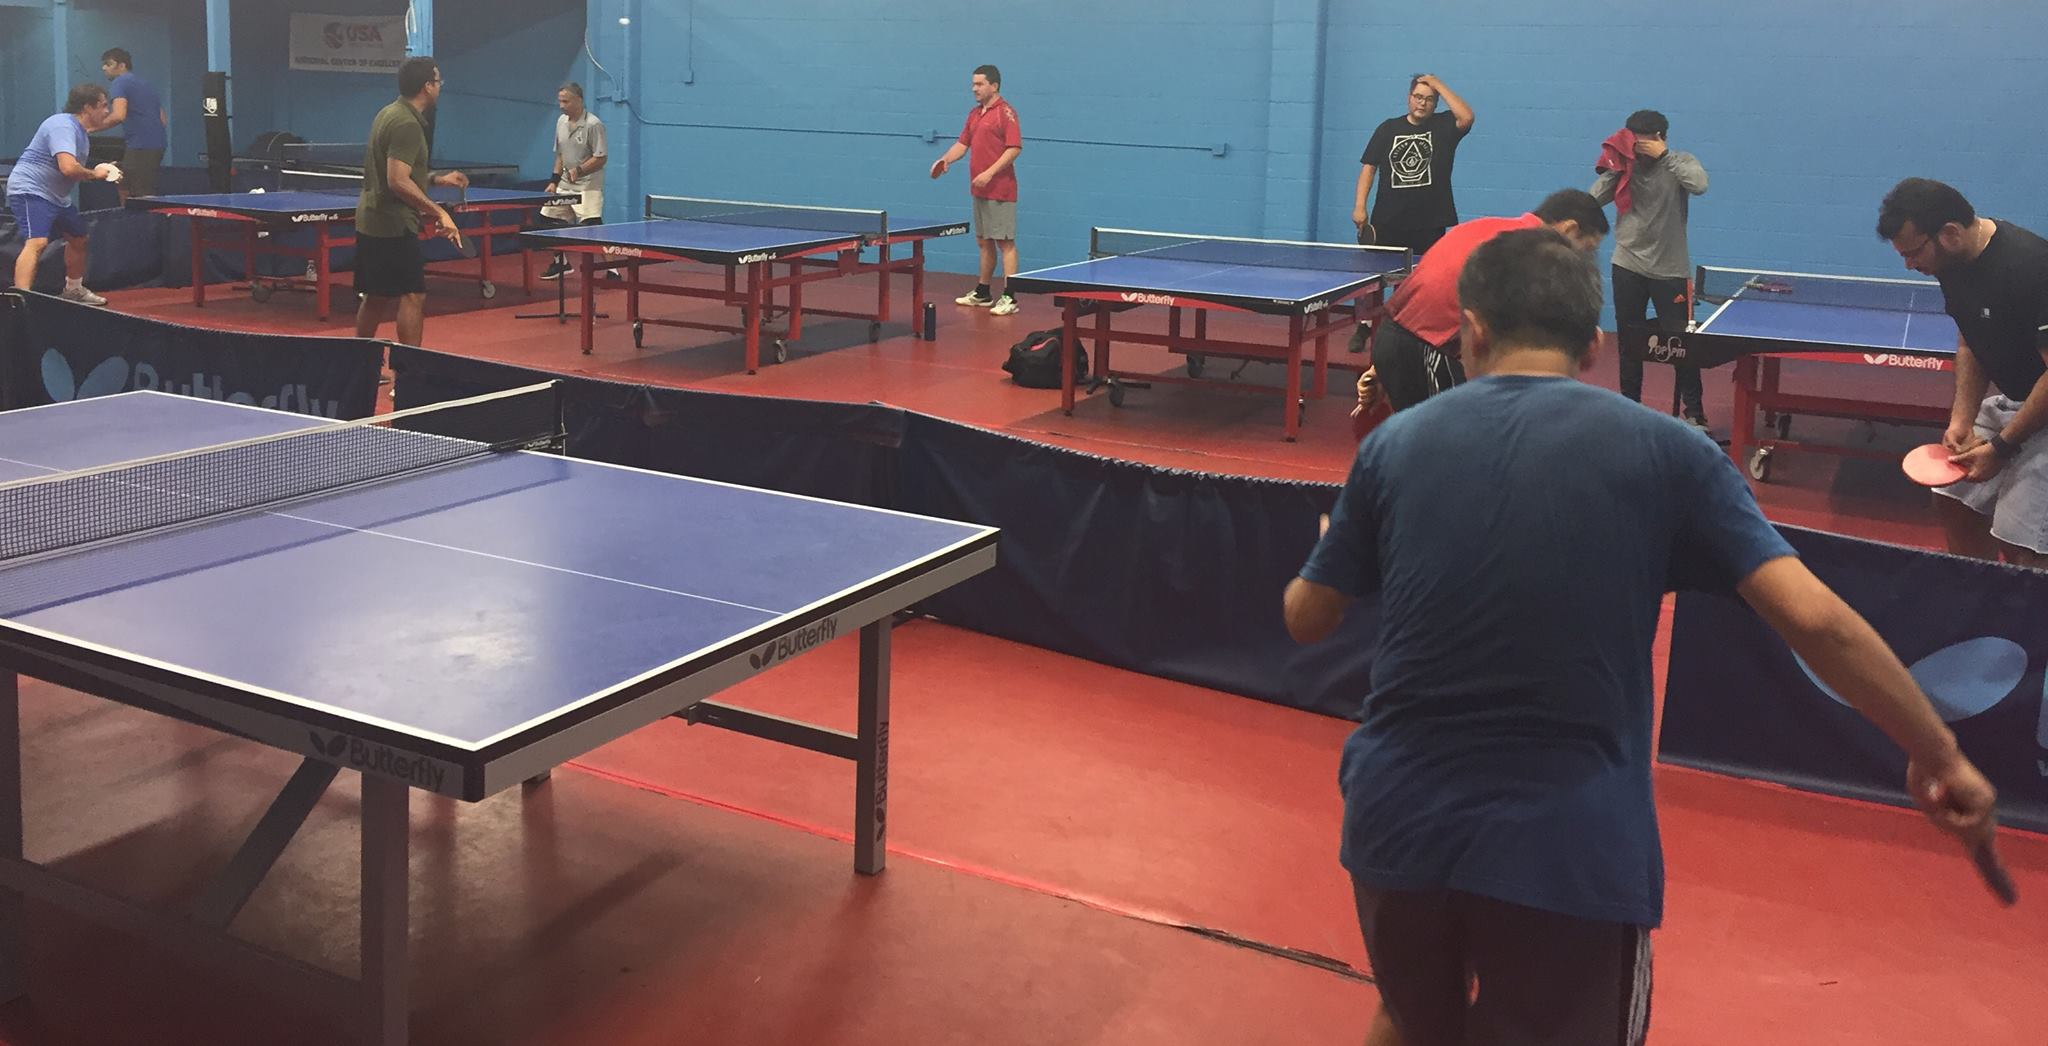 WAB FEATURED CLUB: The Topspin Table Tennis Center